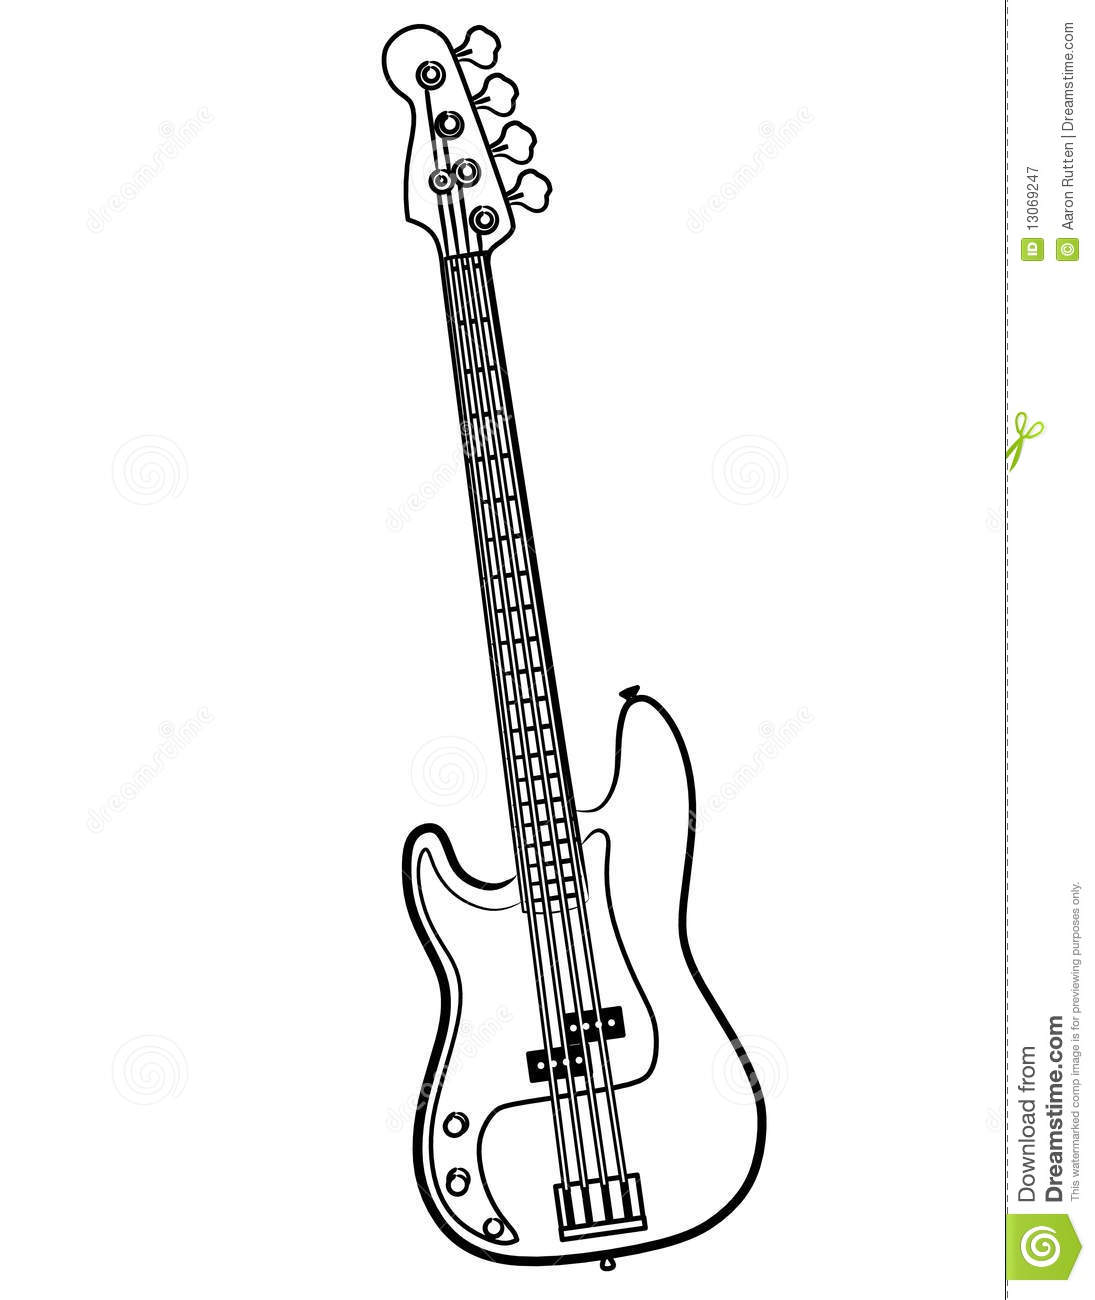 Electric Bass Guitar Line Art Vector Illustration Royalty